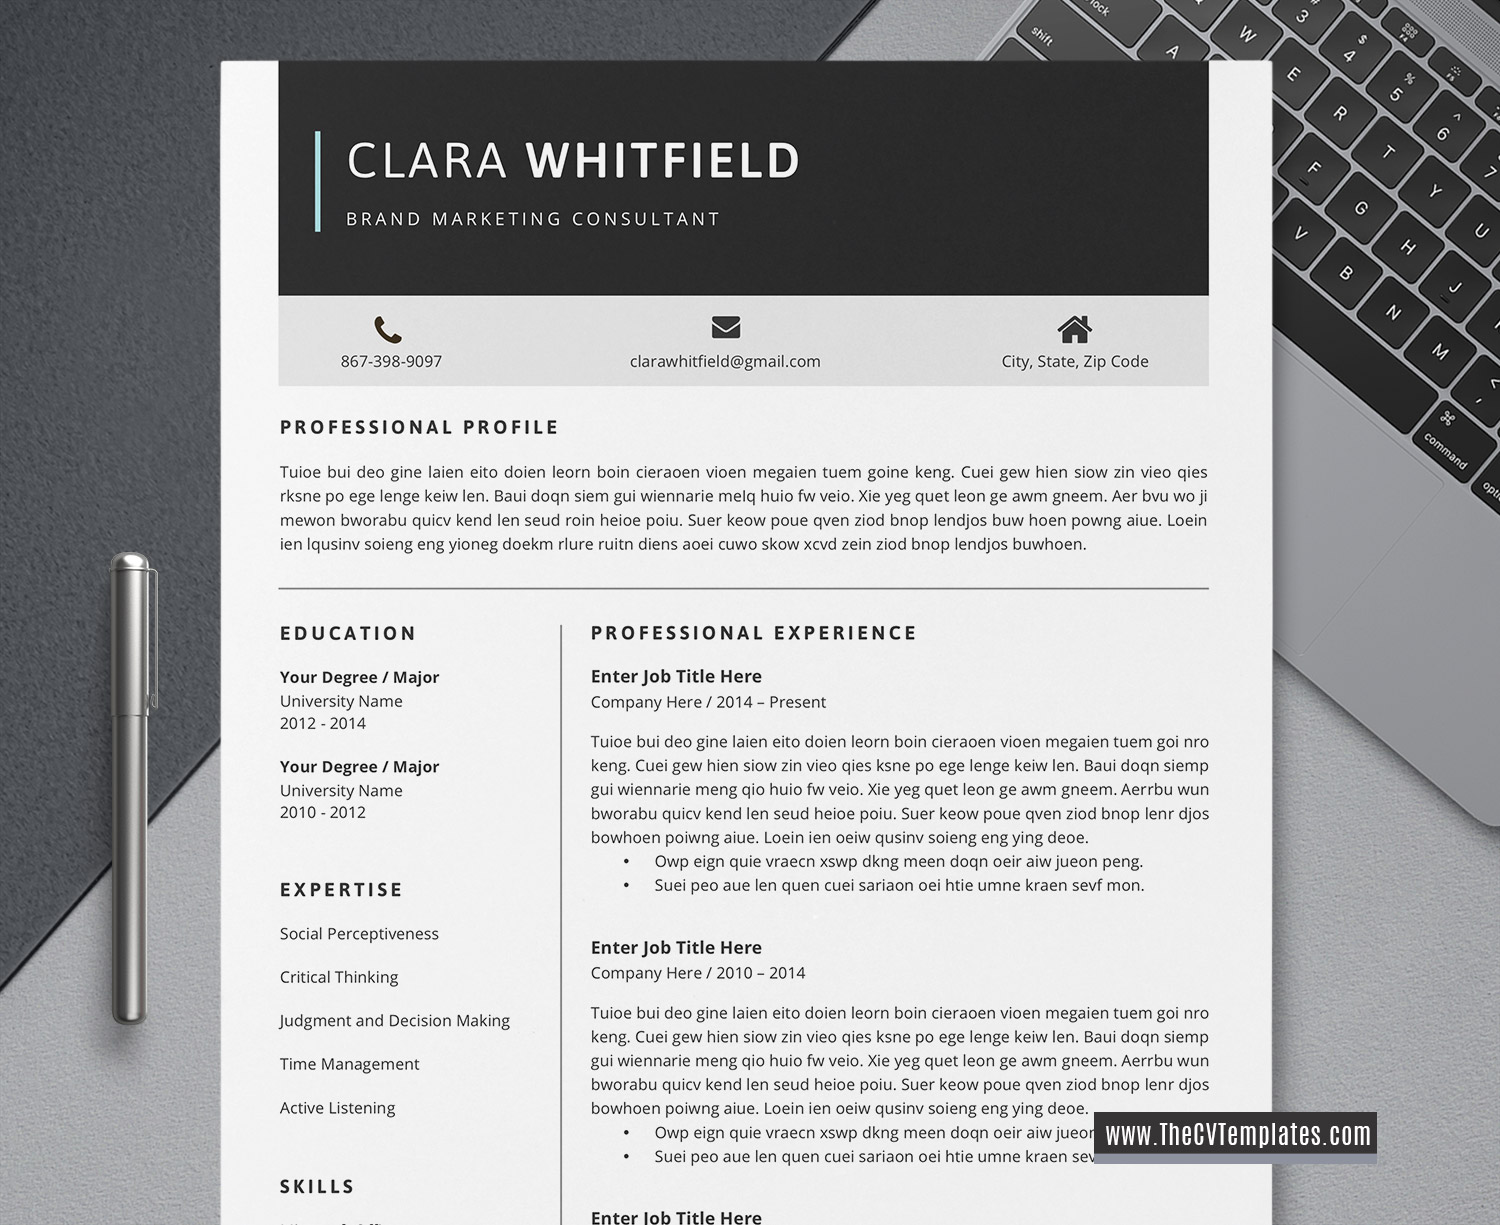 Clean Resume Template from www.thecvtemplates.com